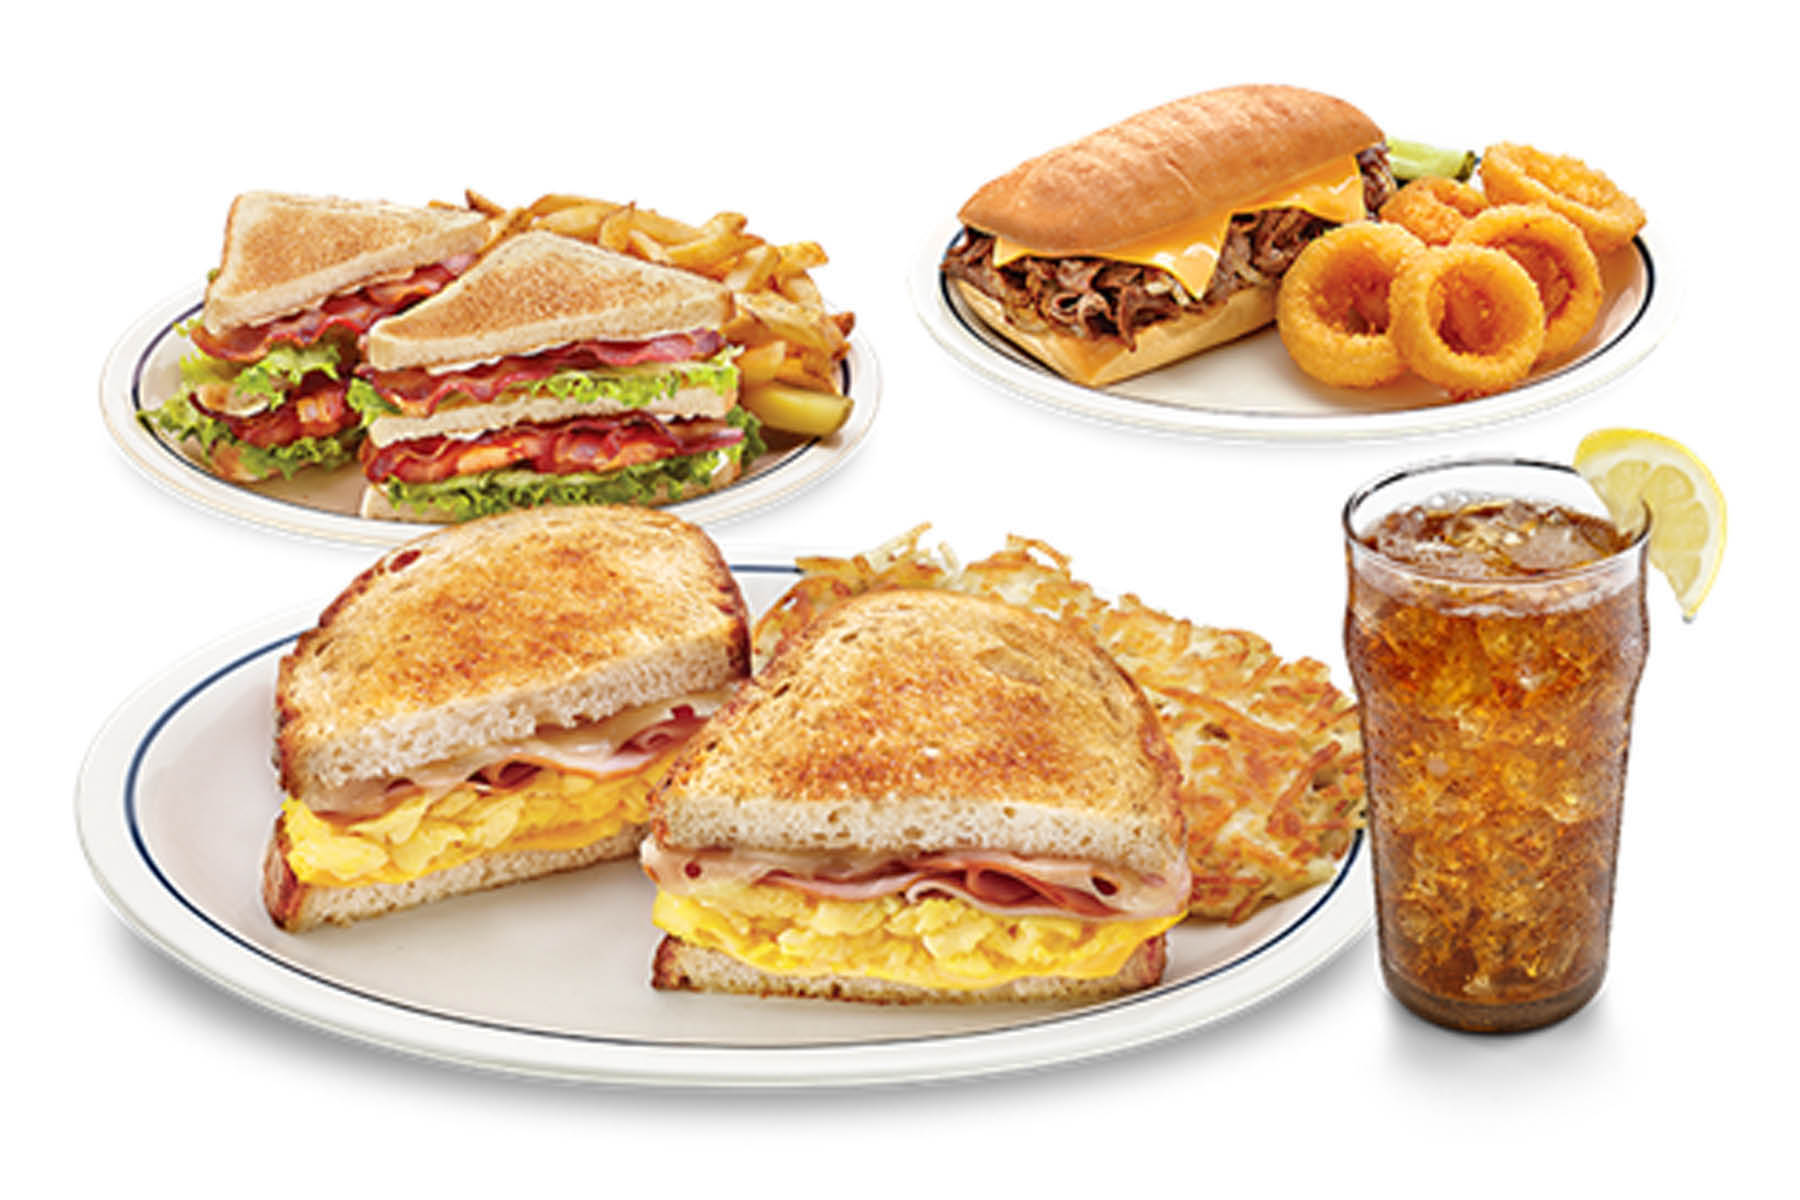 ihop sandwiches, ihop food, ihop of roanoke virginia